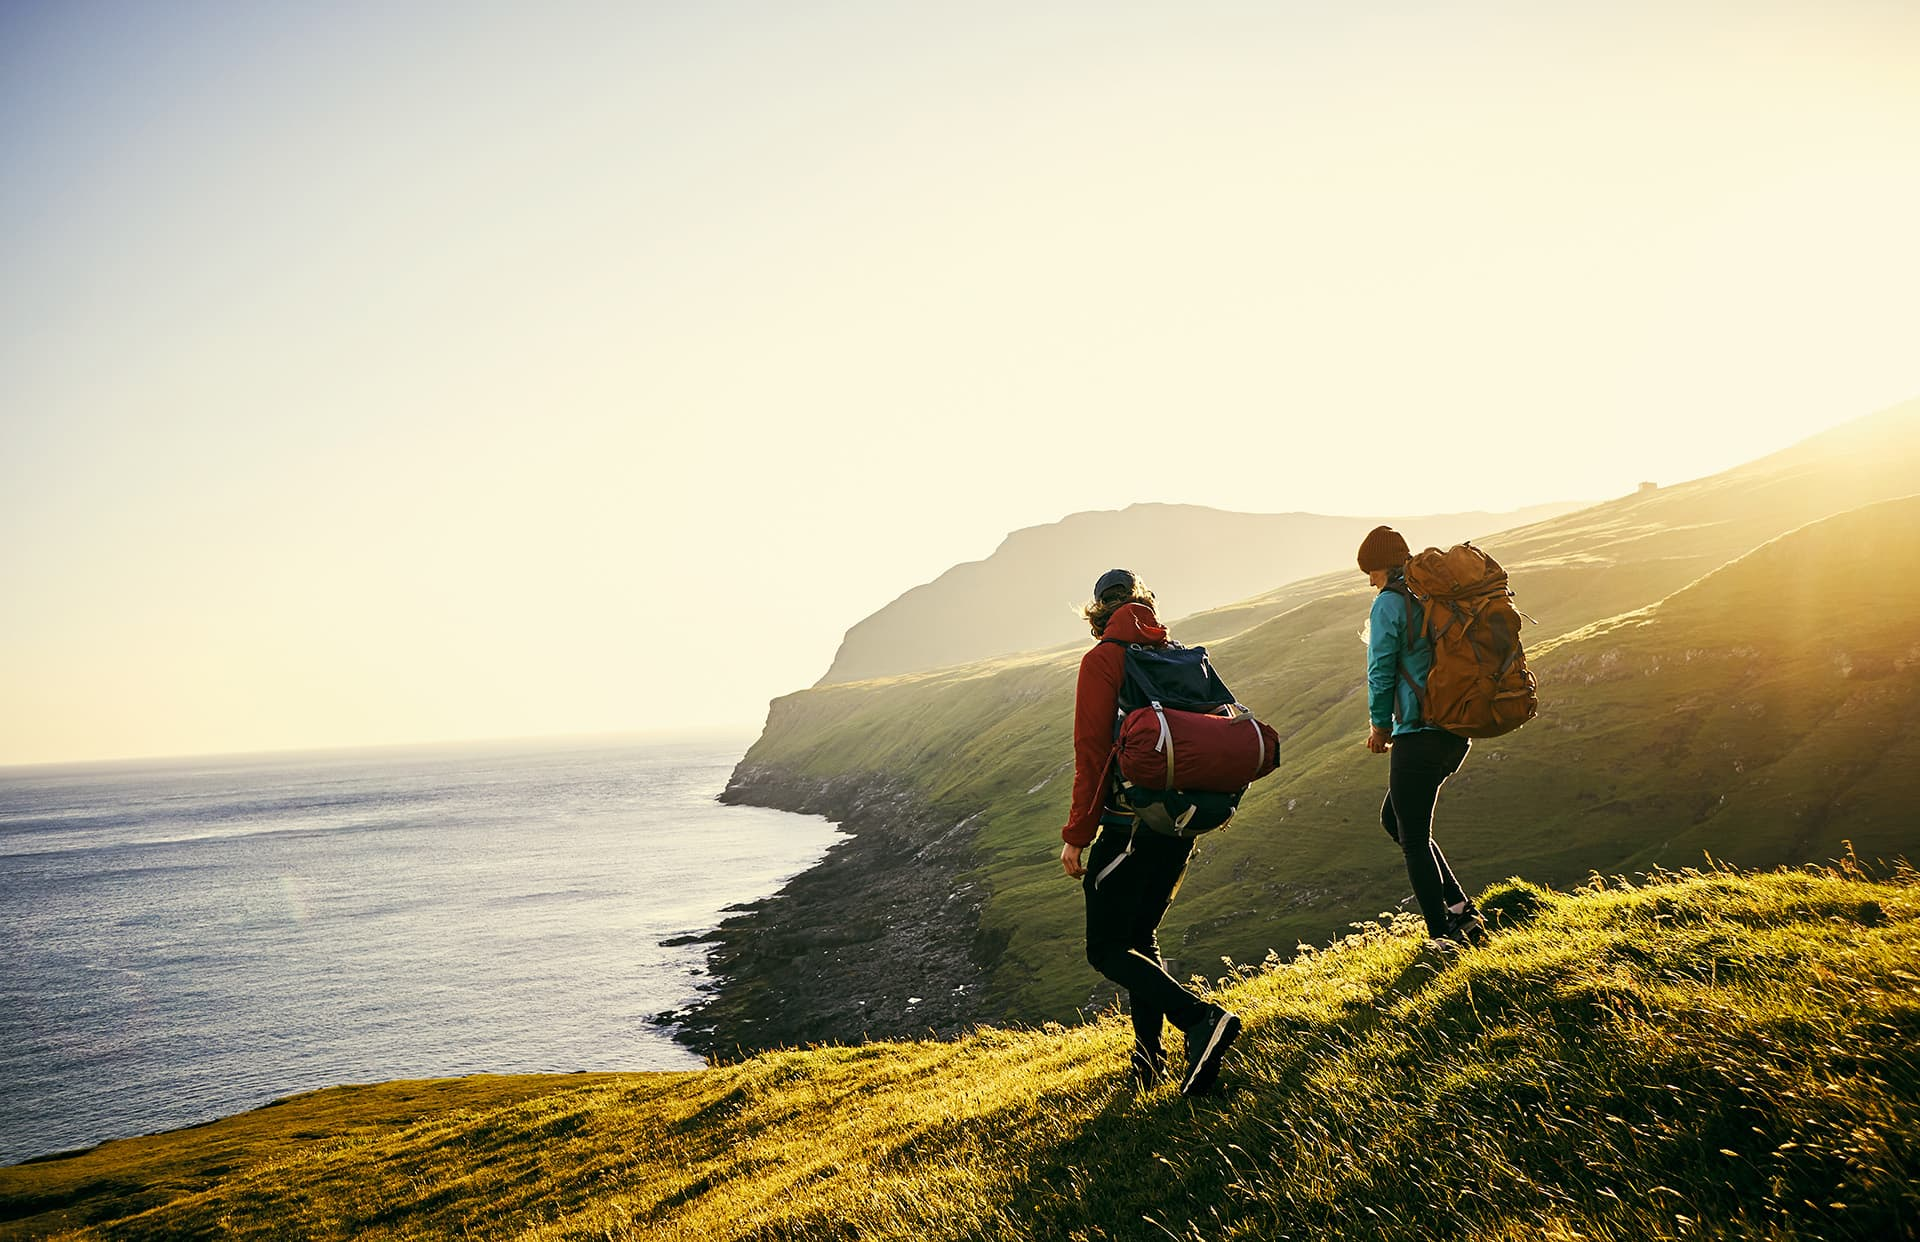 Backpacker travel insurance for two people hiking on cliffs near water